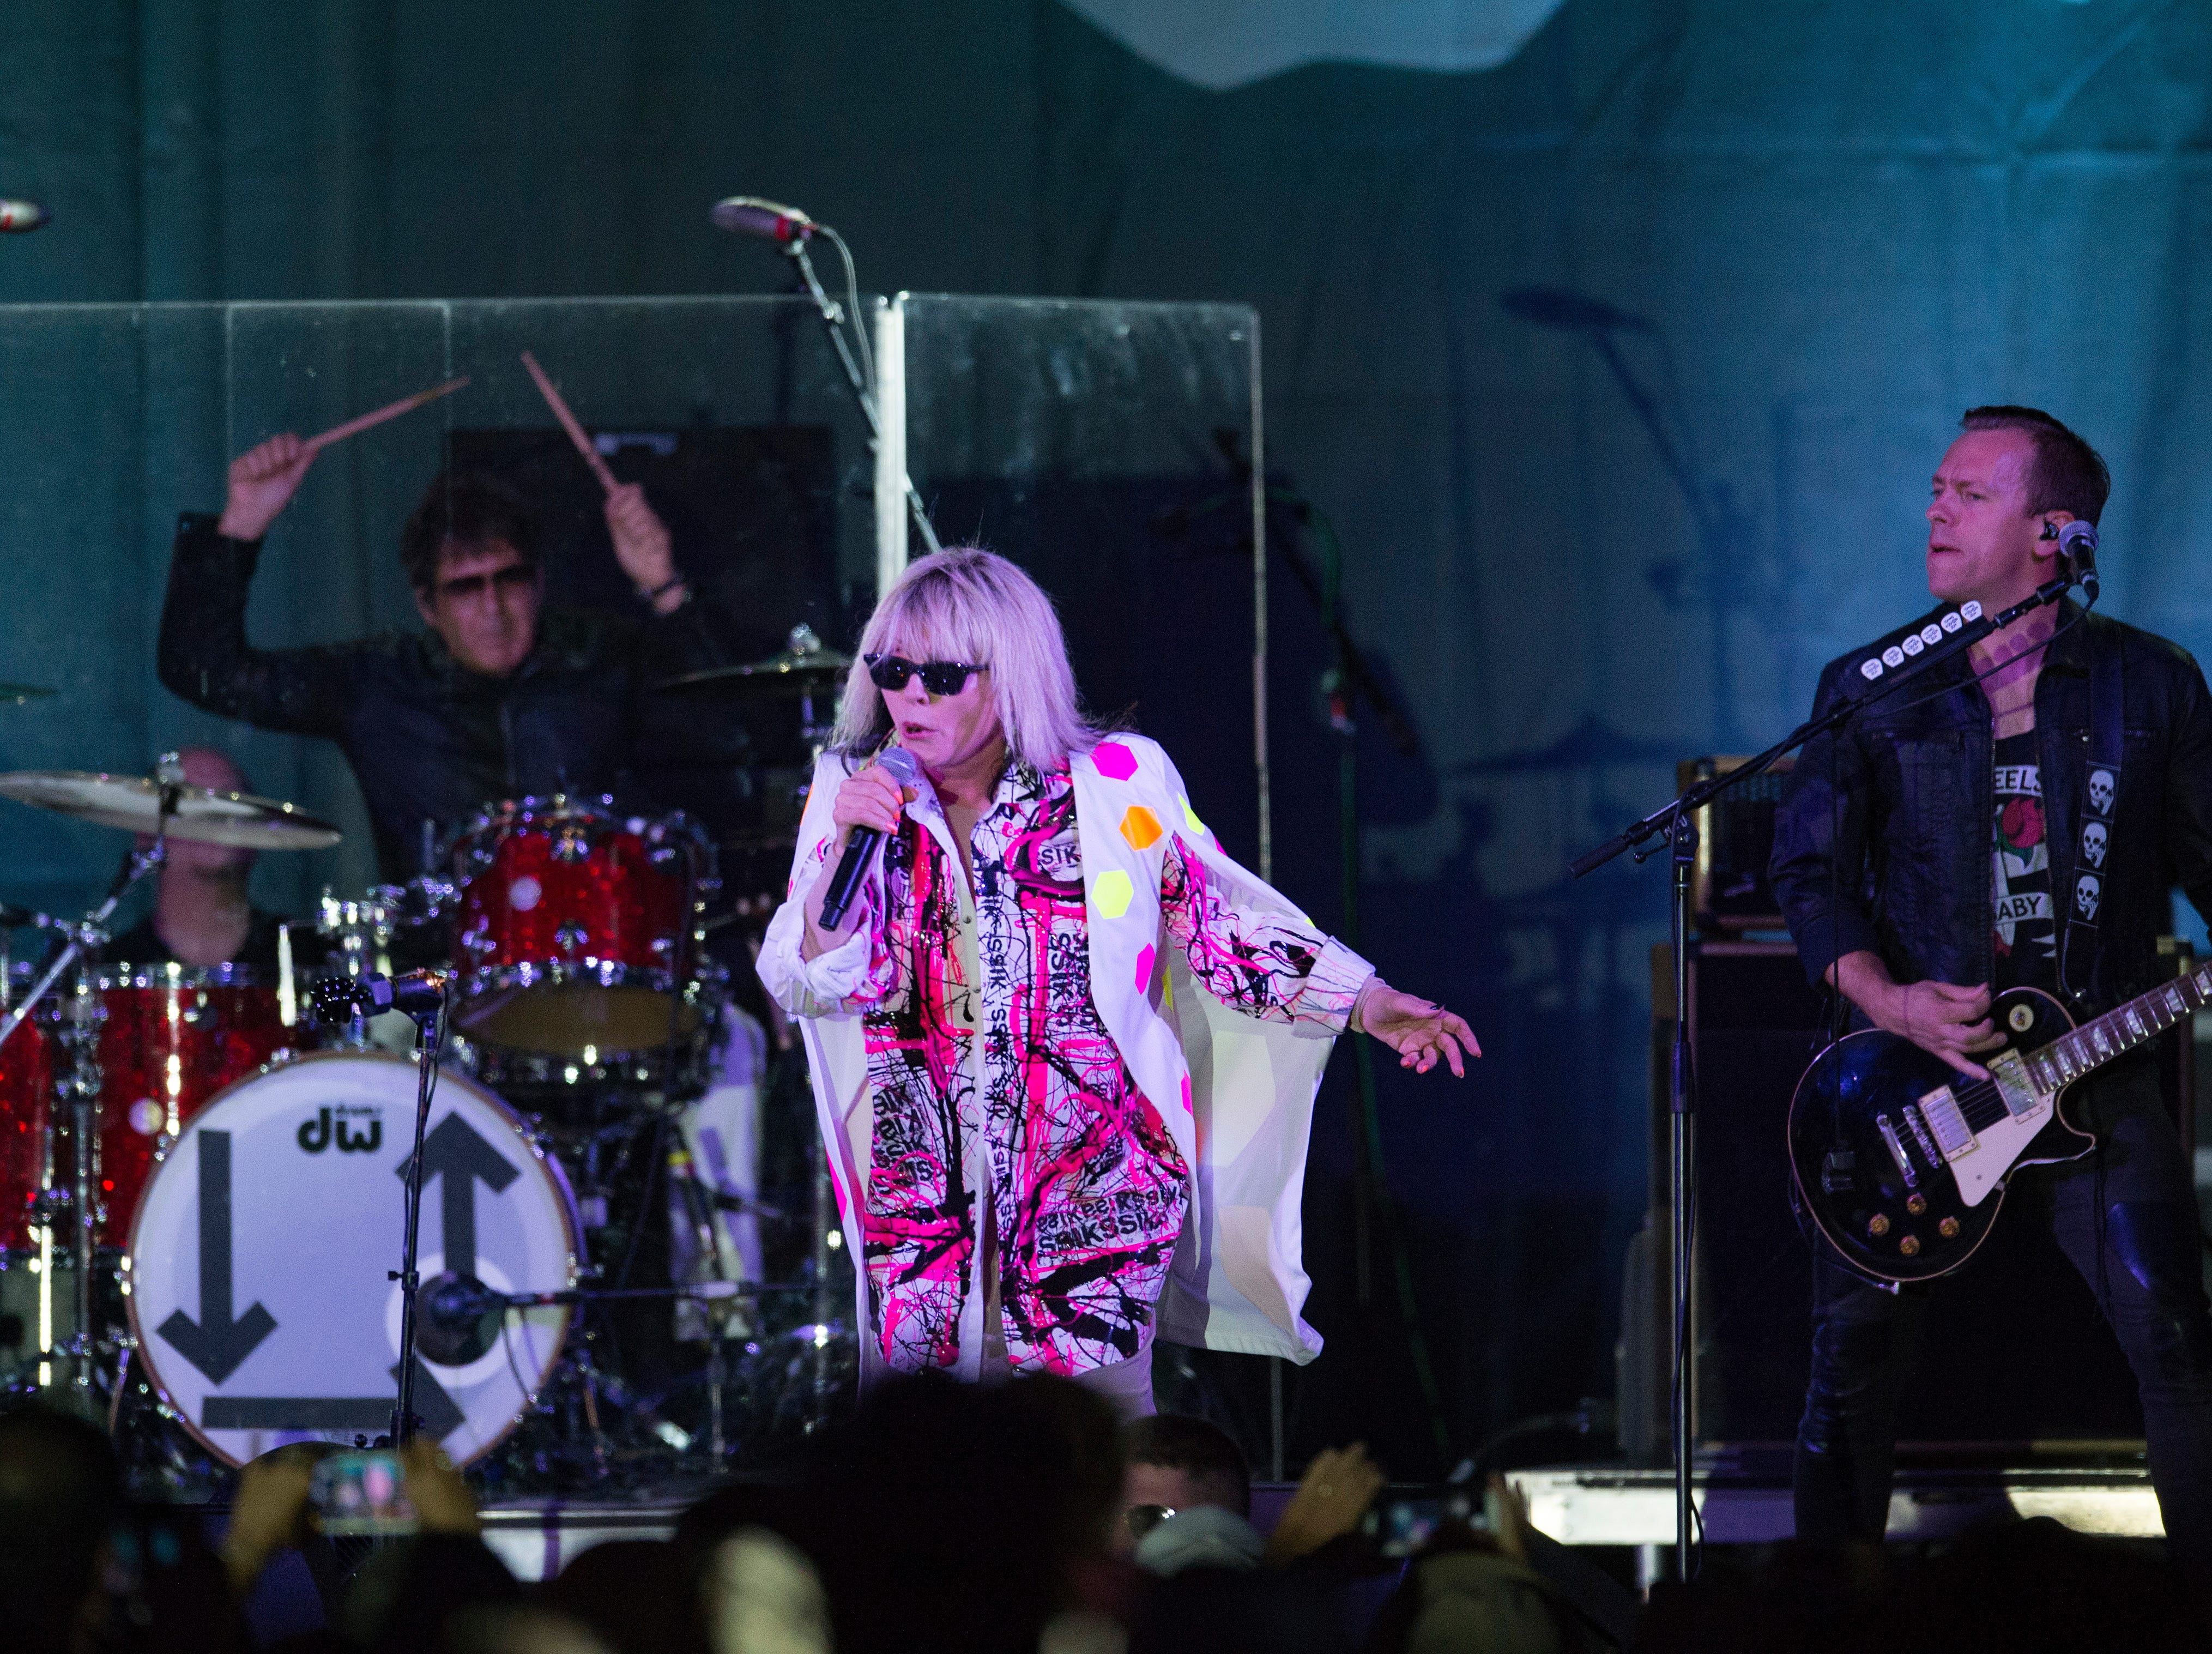 Blondie performs to a packed crowd on the Mountain Avenue Stage during Bohemian Nights at NewWestFest on Saturday, August 11, 2018.